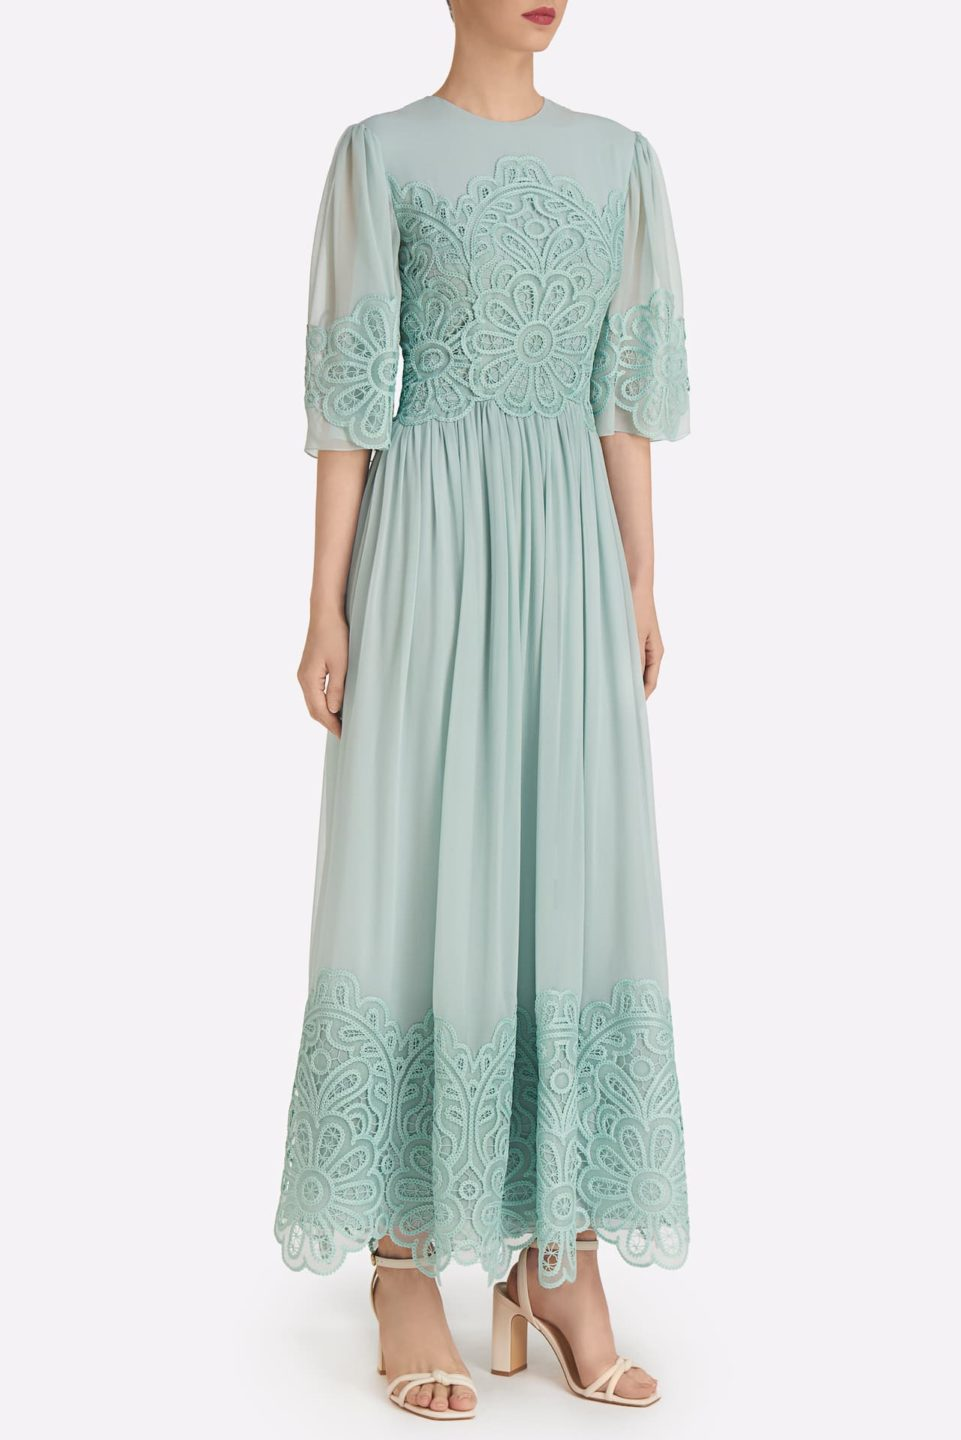 Kenley SS2113 Green Silk Chiffon A-Line Dress with Emrboidered Lace Detail